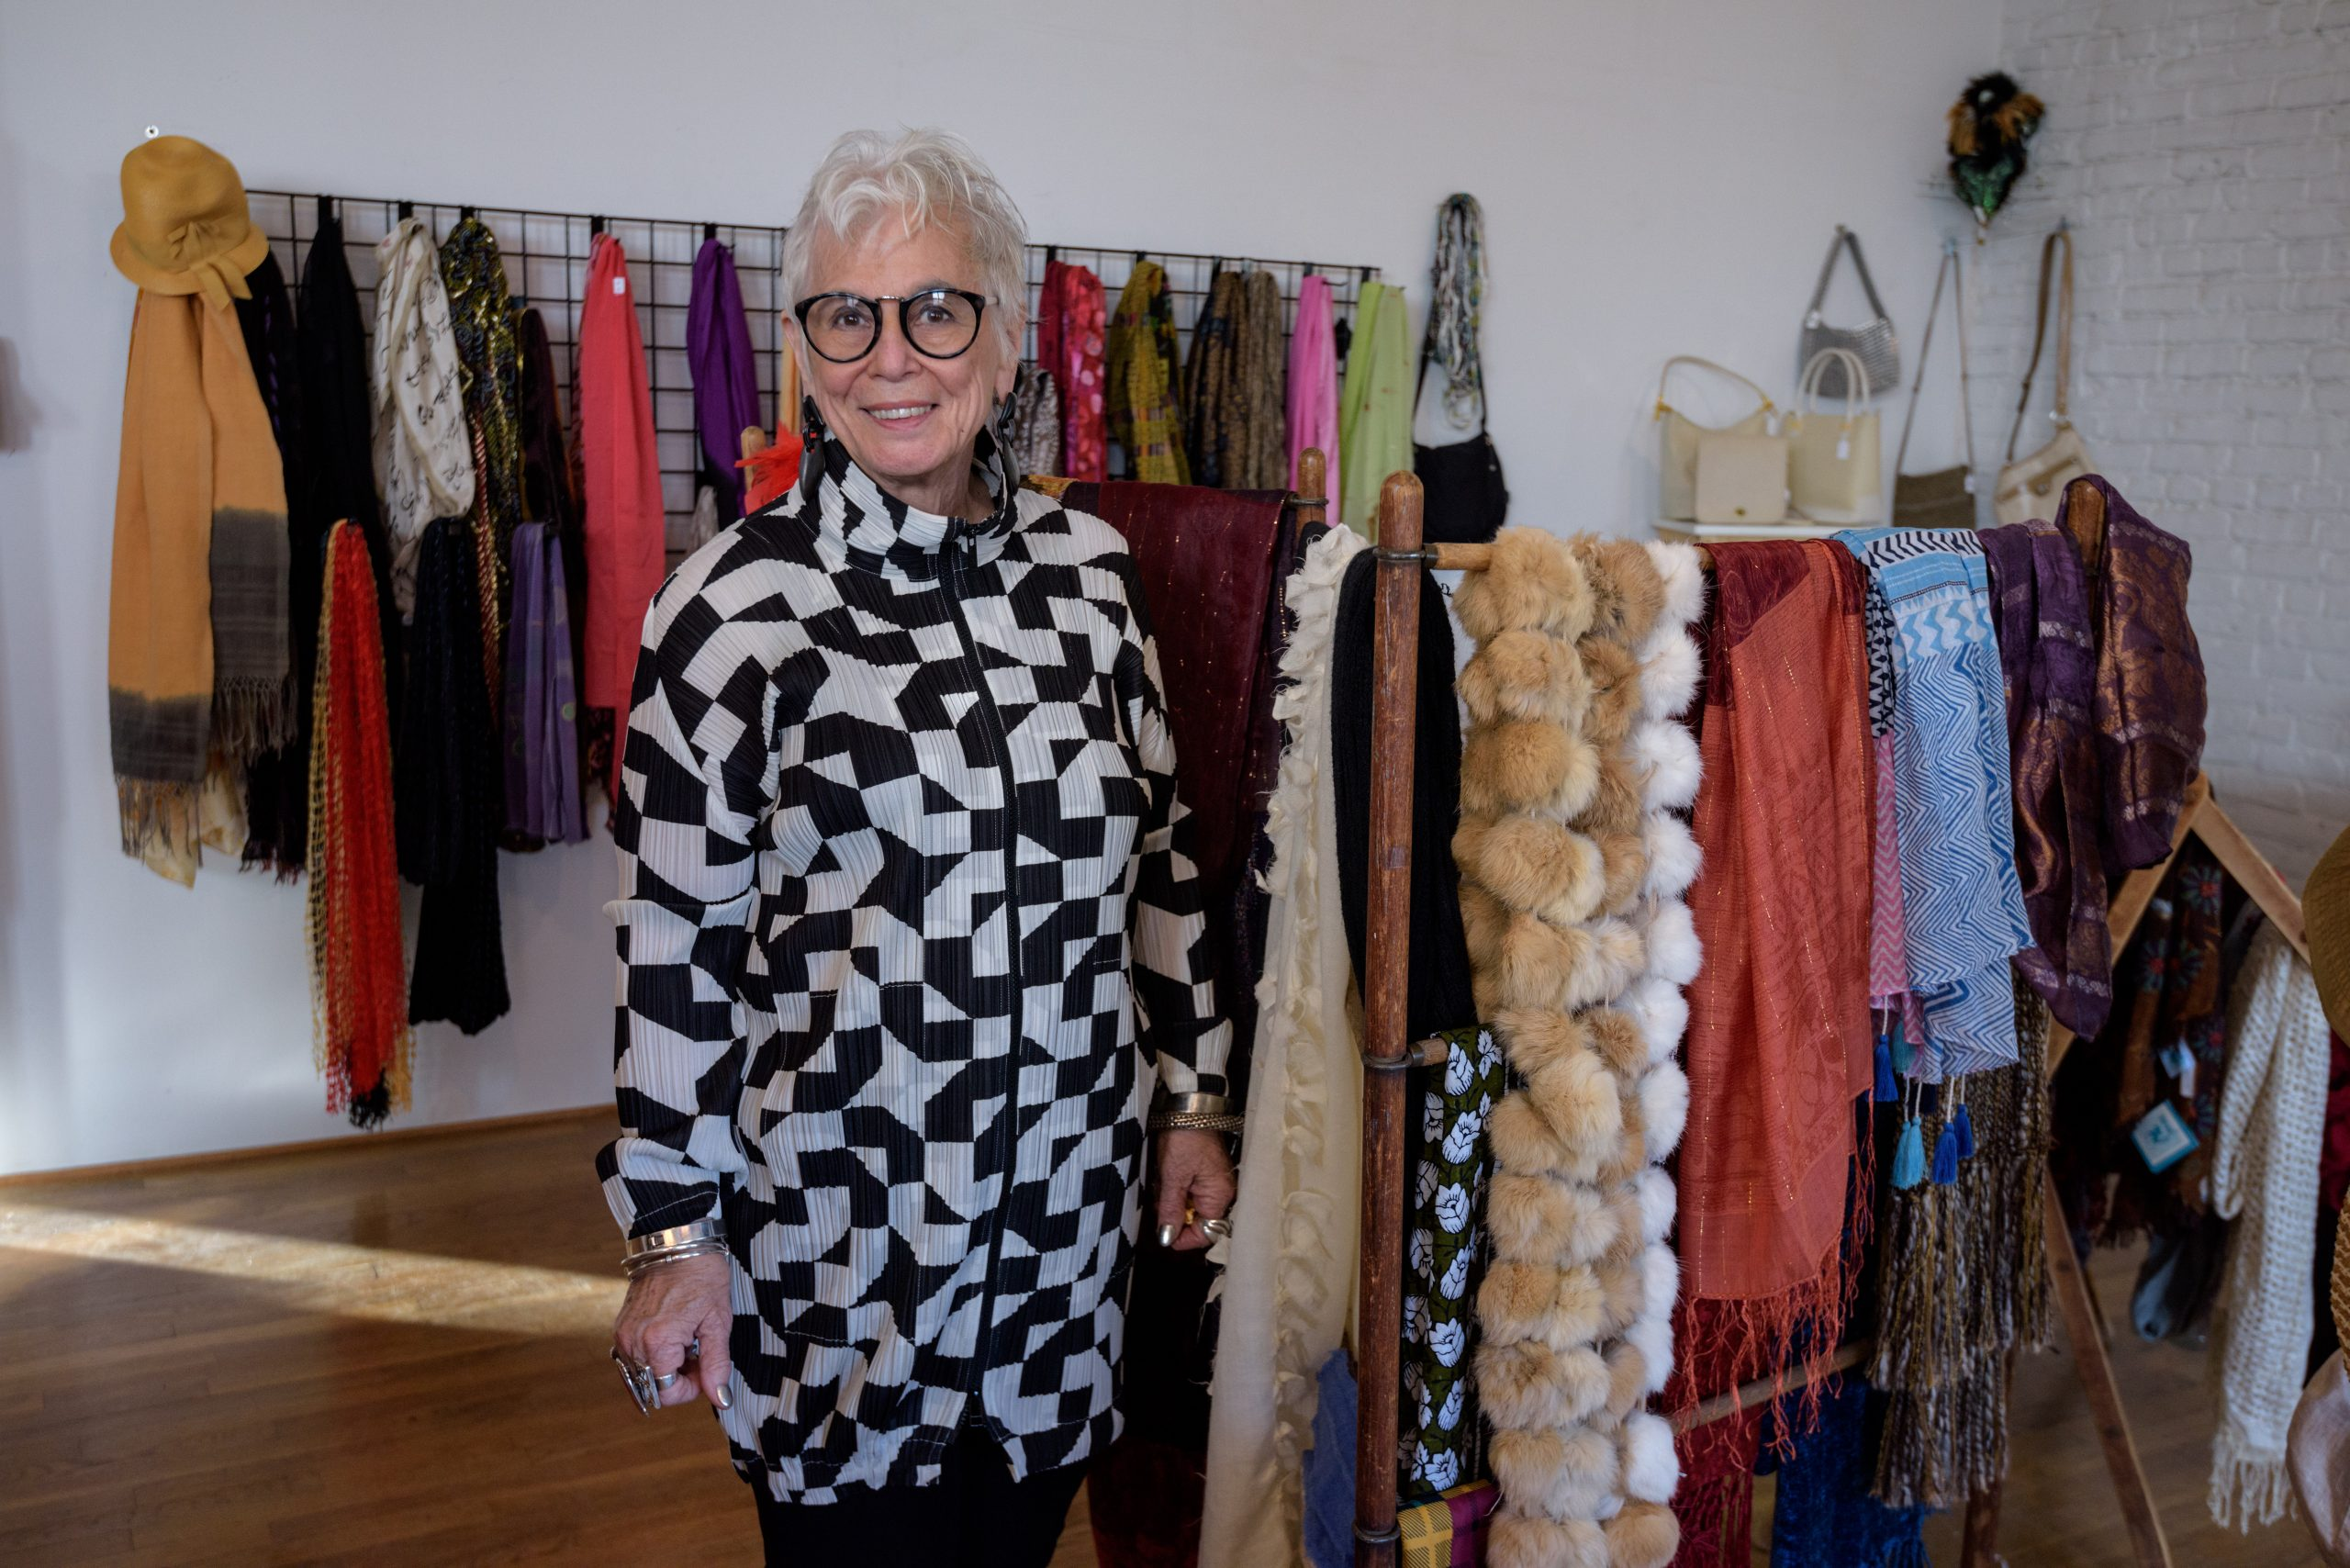 Photograph of a woman wearing a black and white patterned blouse, standing next to racks of clothing